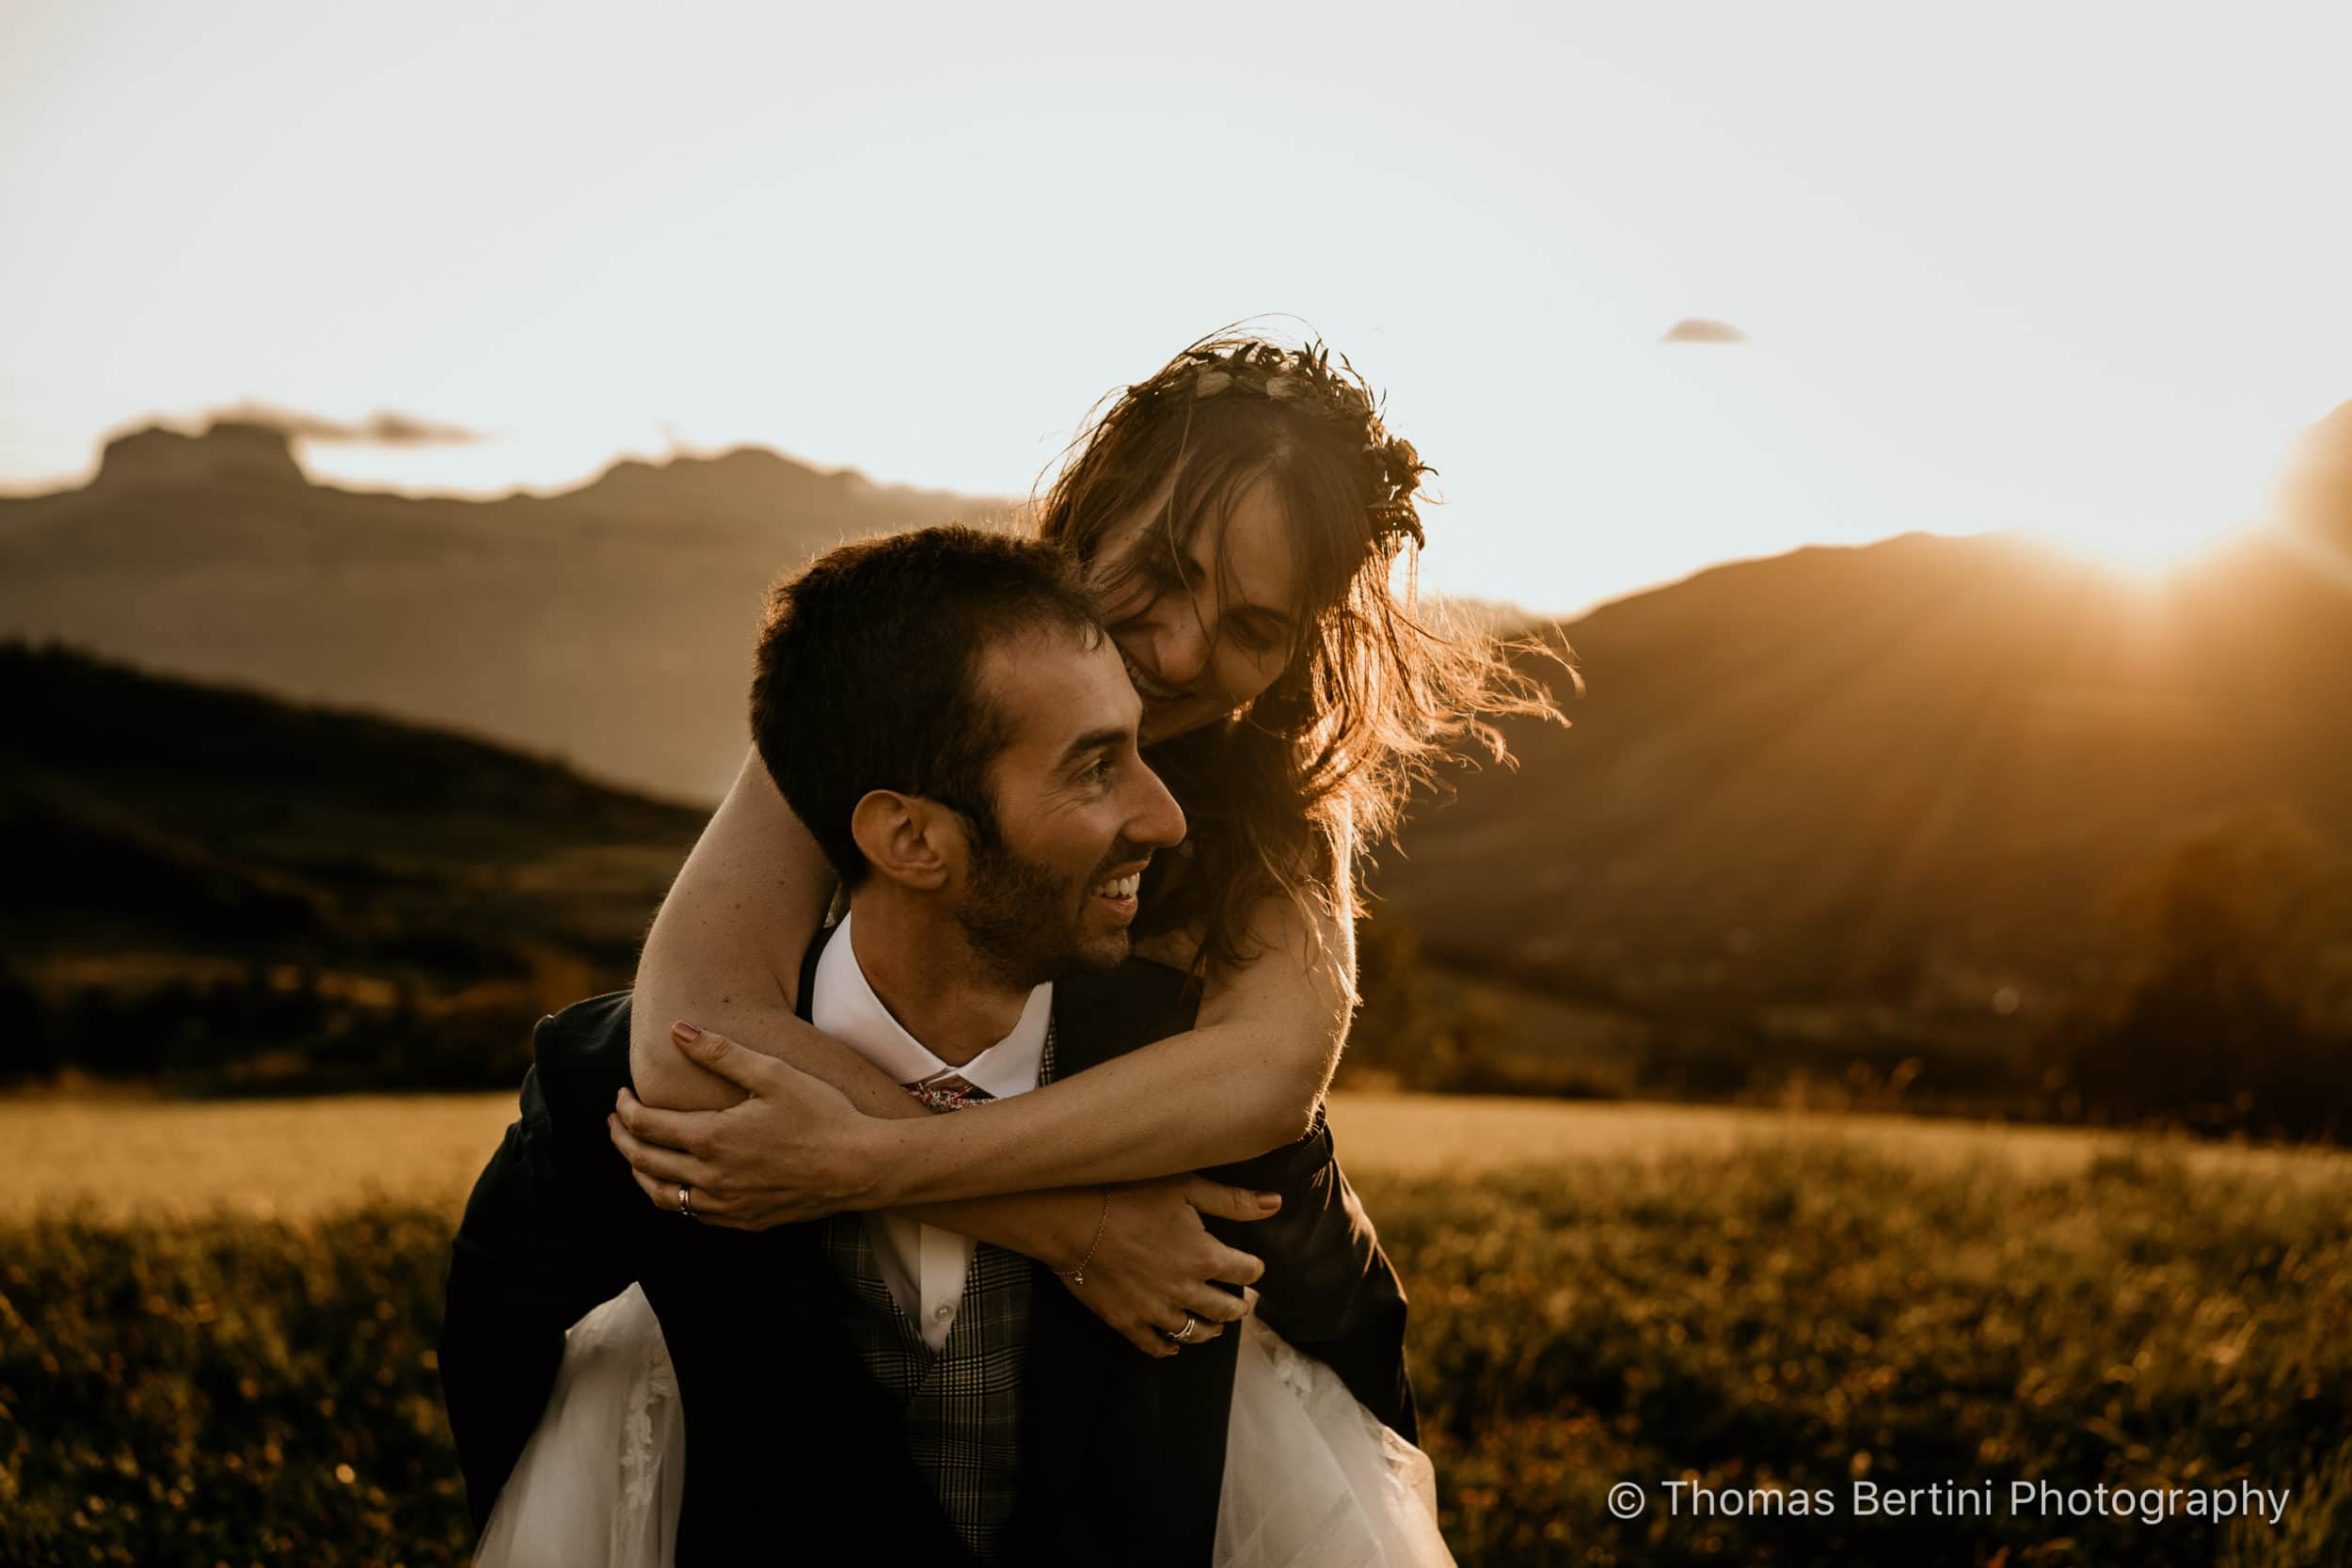 Thomas Bertini Photography - Séance photo couple mariage nature - Wedding photo shooting wild - Jausiers Alpes route de la bonette-55